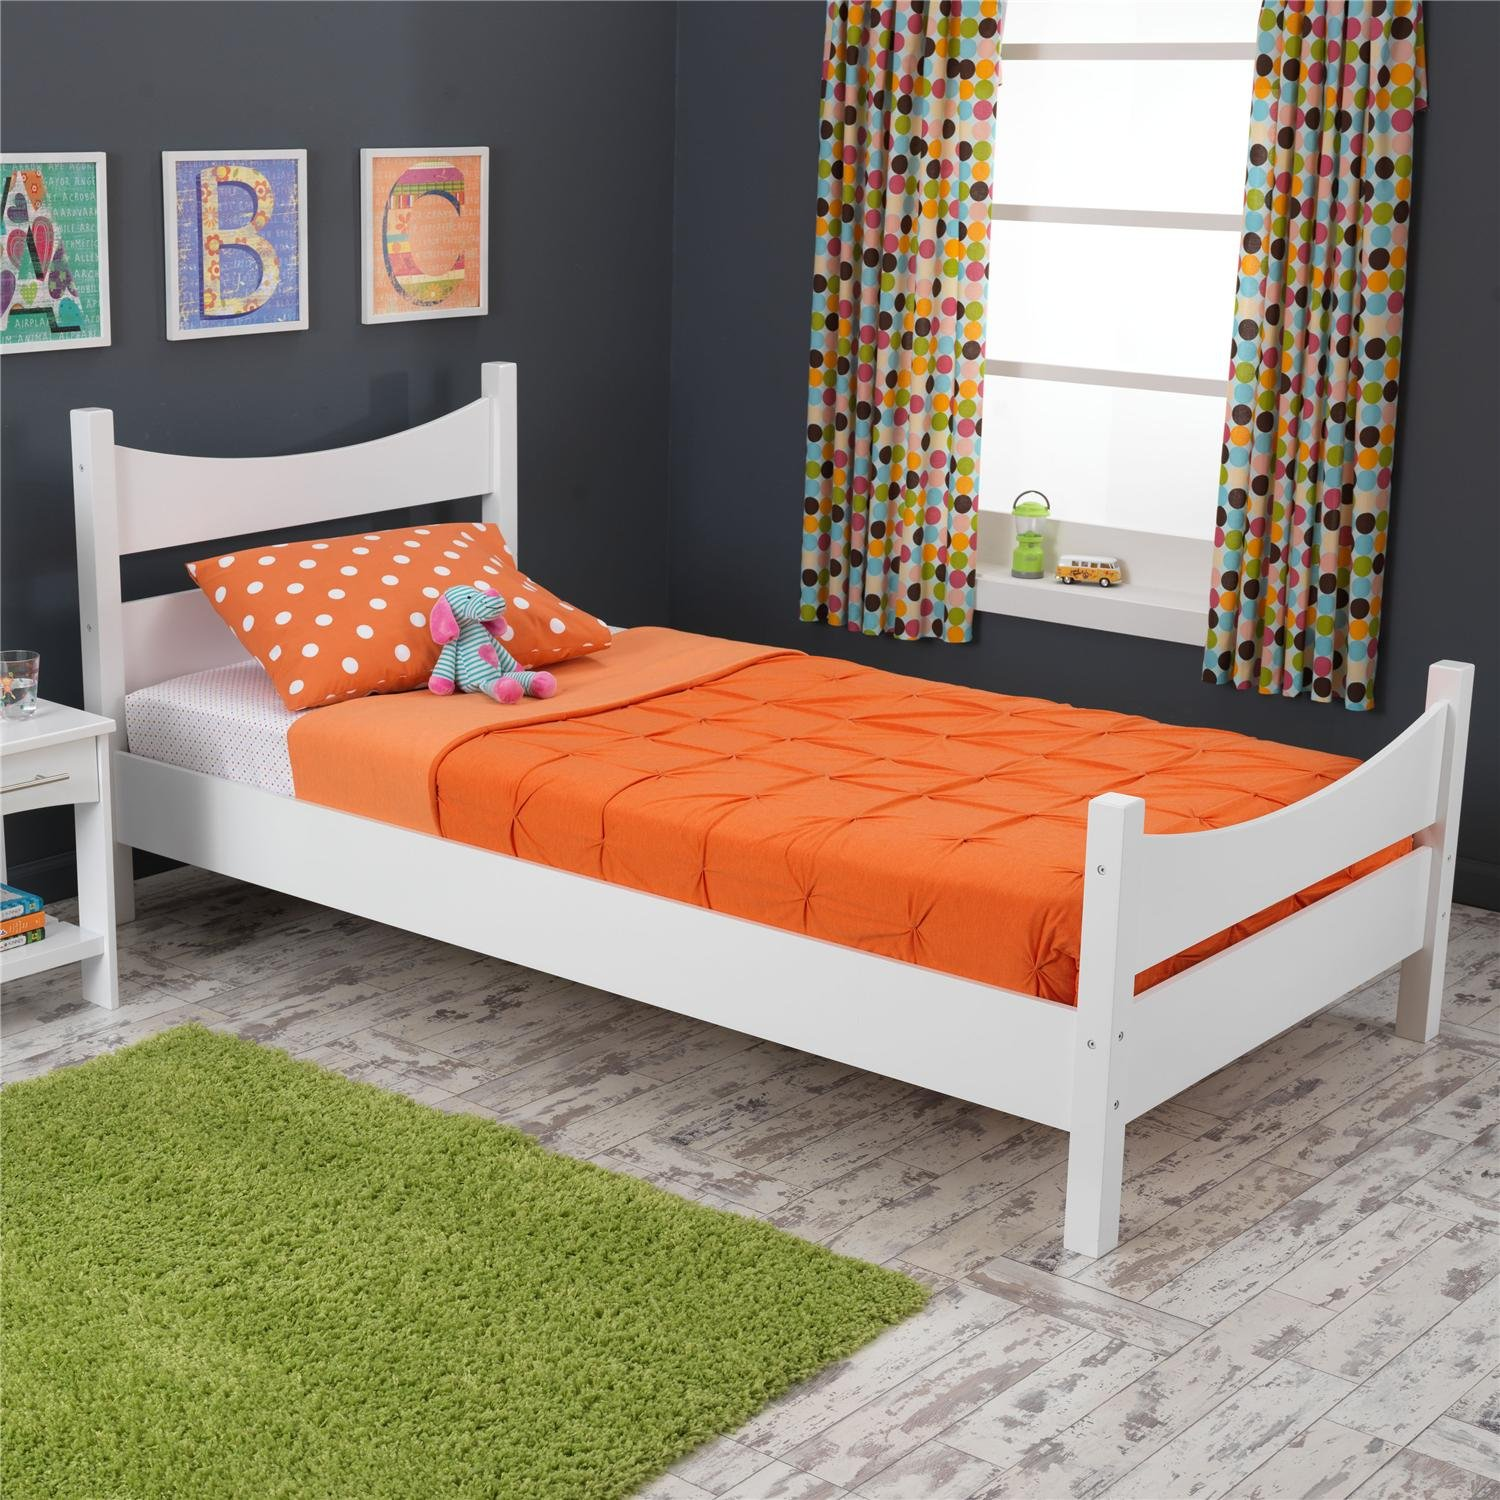 KidKraft Addison Twin Bed White